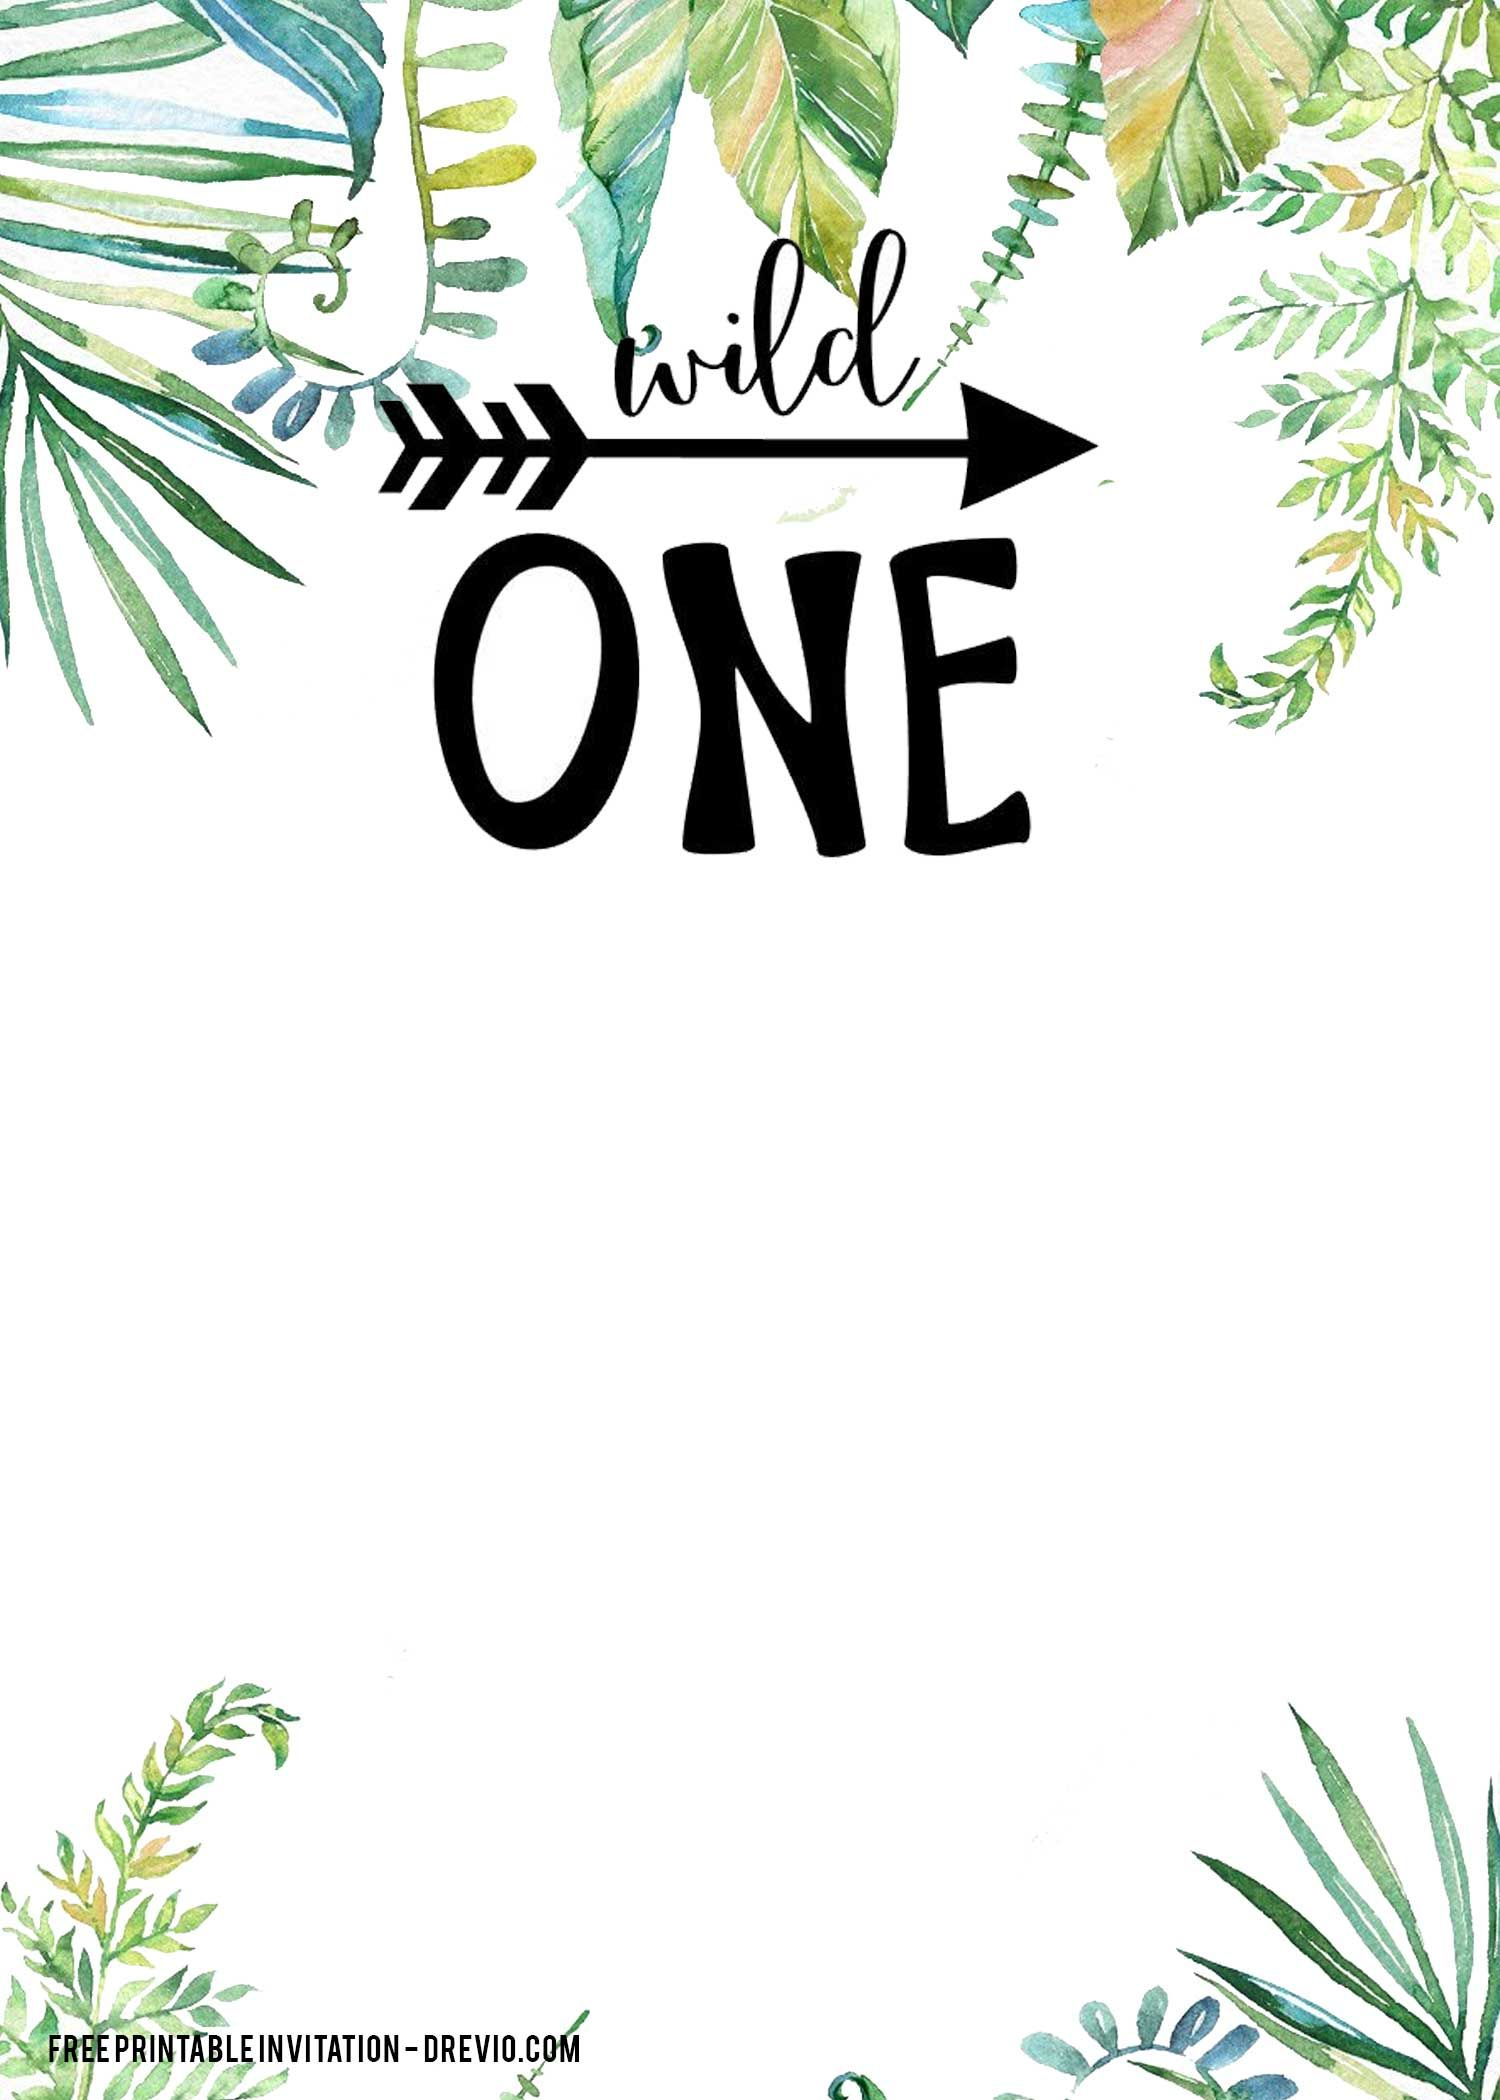 FREE Printable Wild ONE Invitation Templates  FREE Invitation